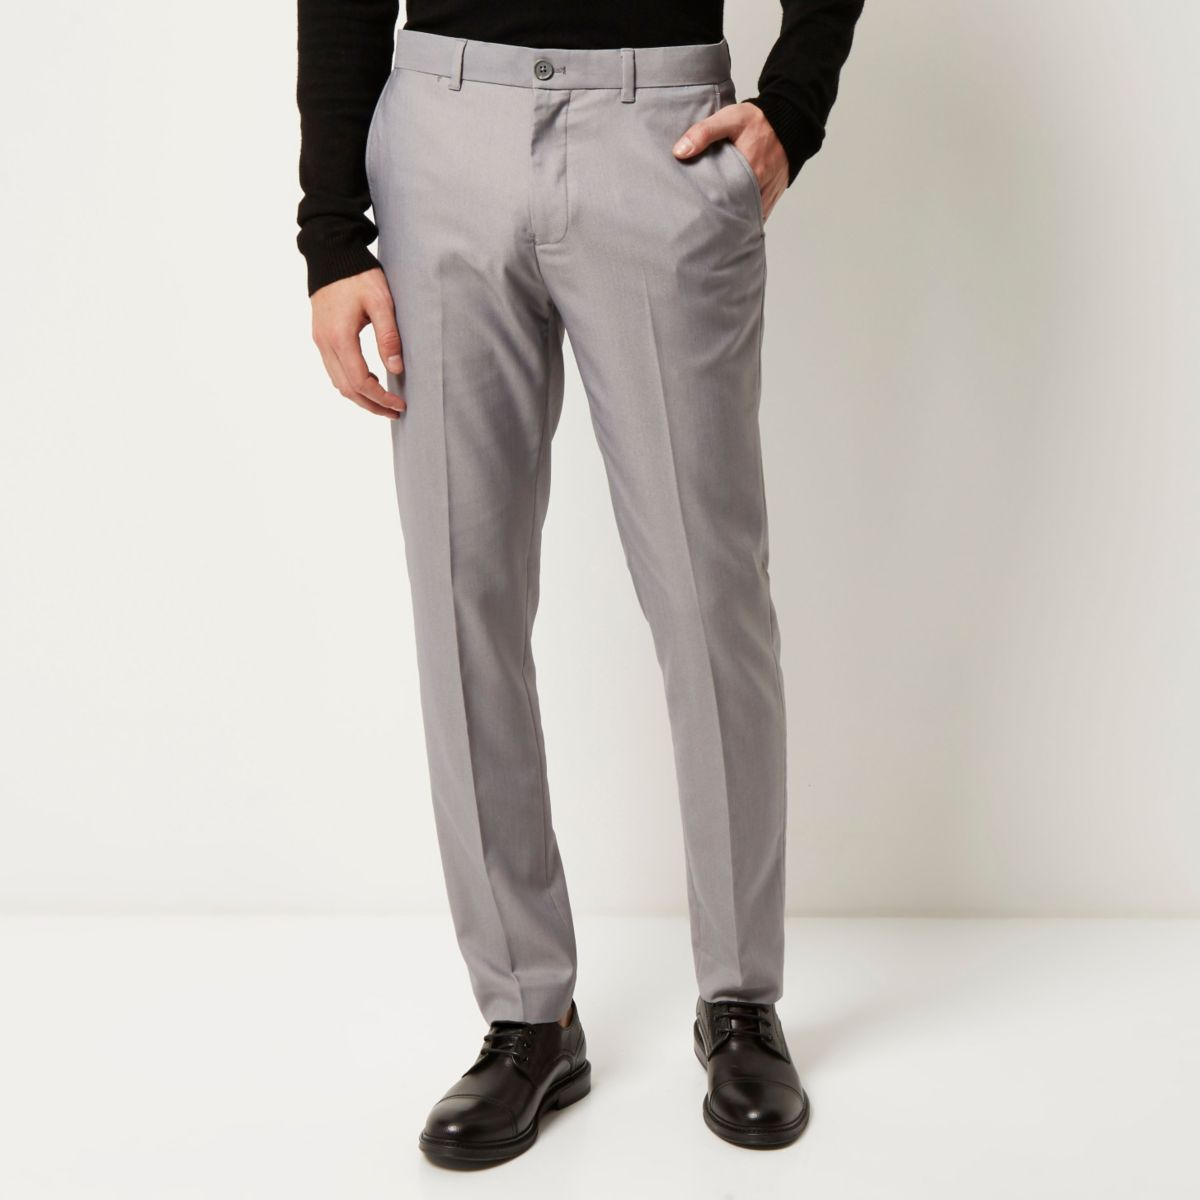 Grey smart slim trousers